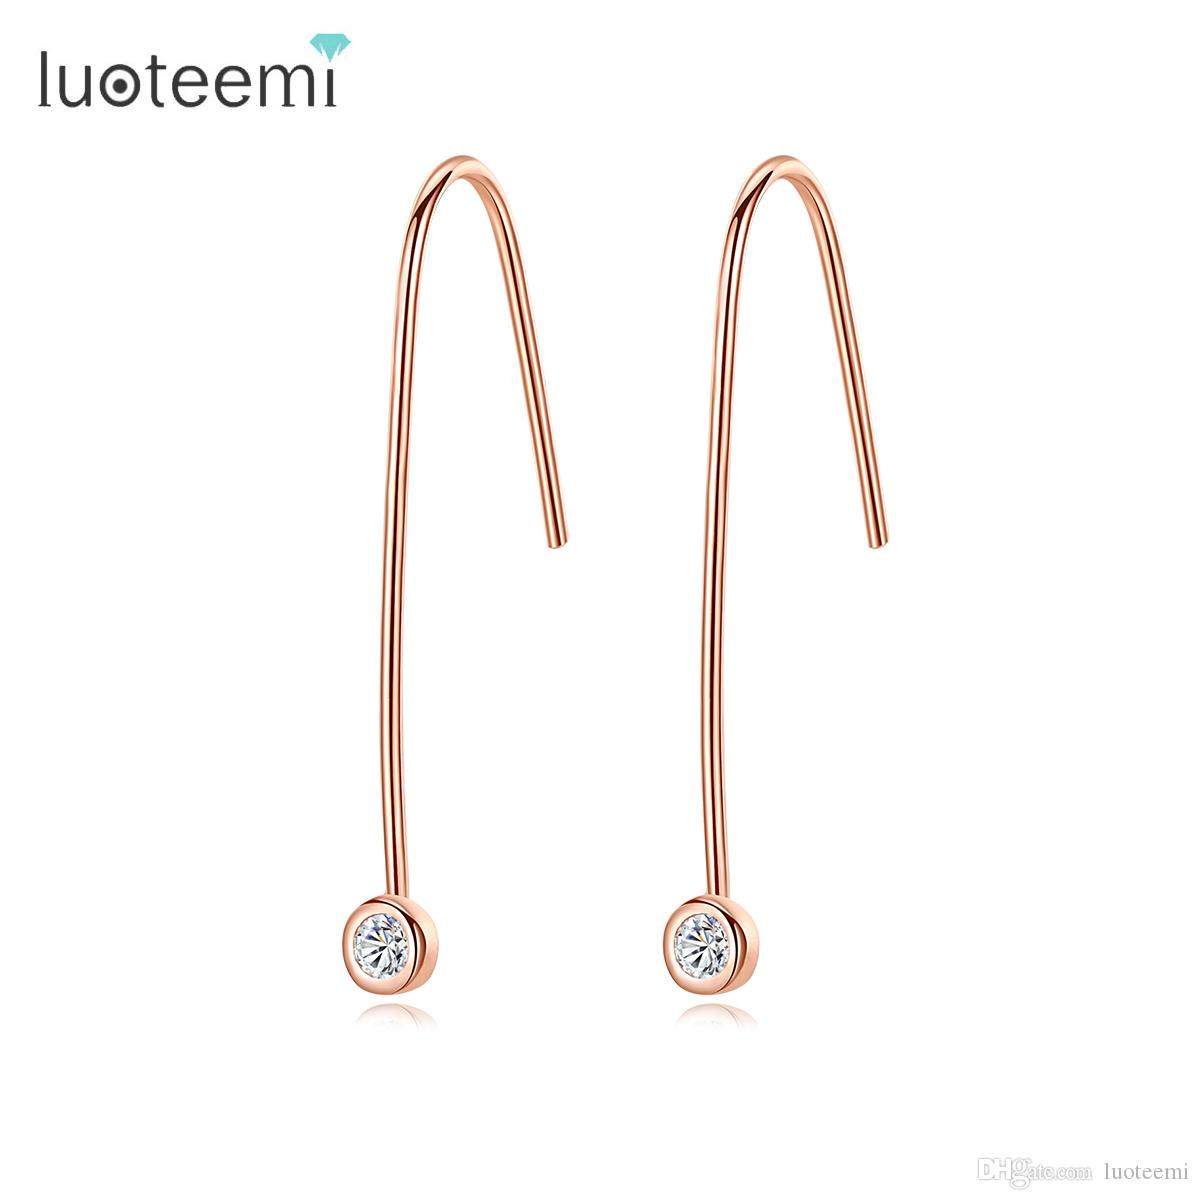 LUOTEEMI Marca de Moda Petite Rose Gold Cor Oscila Brincos Para As Mulheres Genuine 925 Sterling Silver Drop Earrings Jóias Presentes